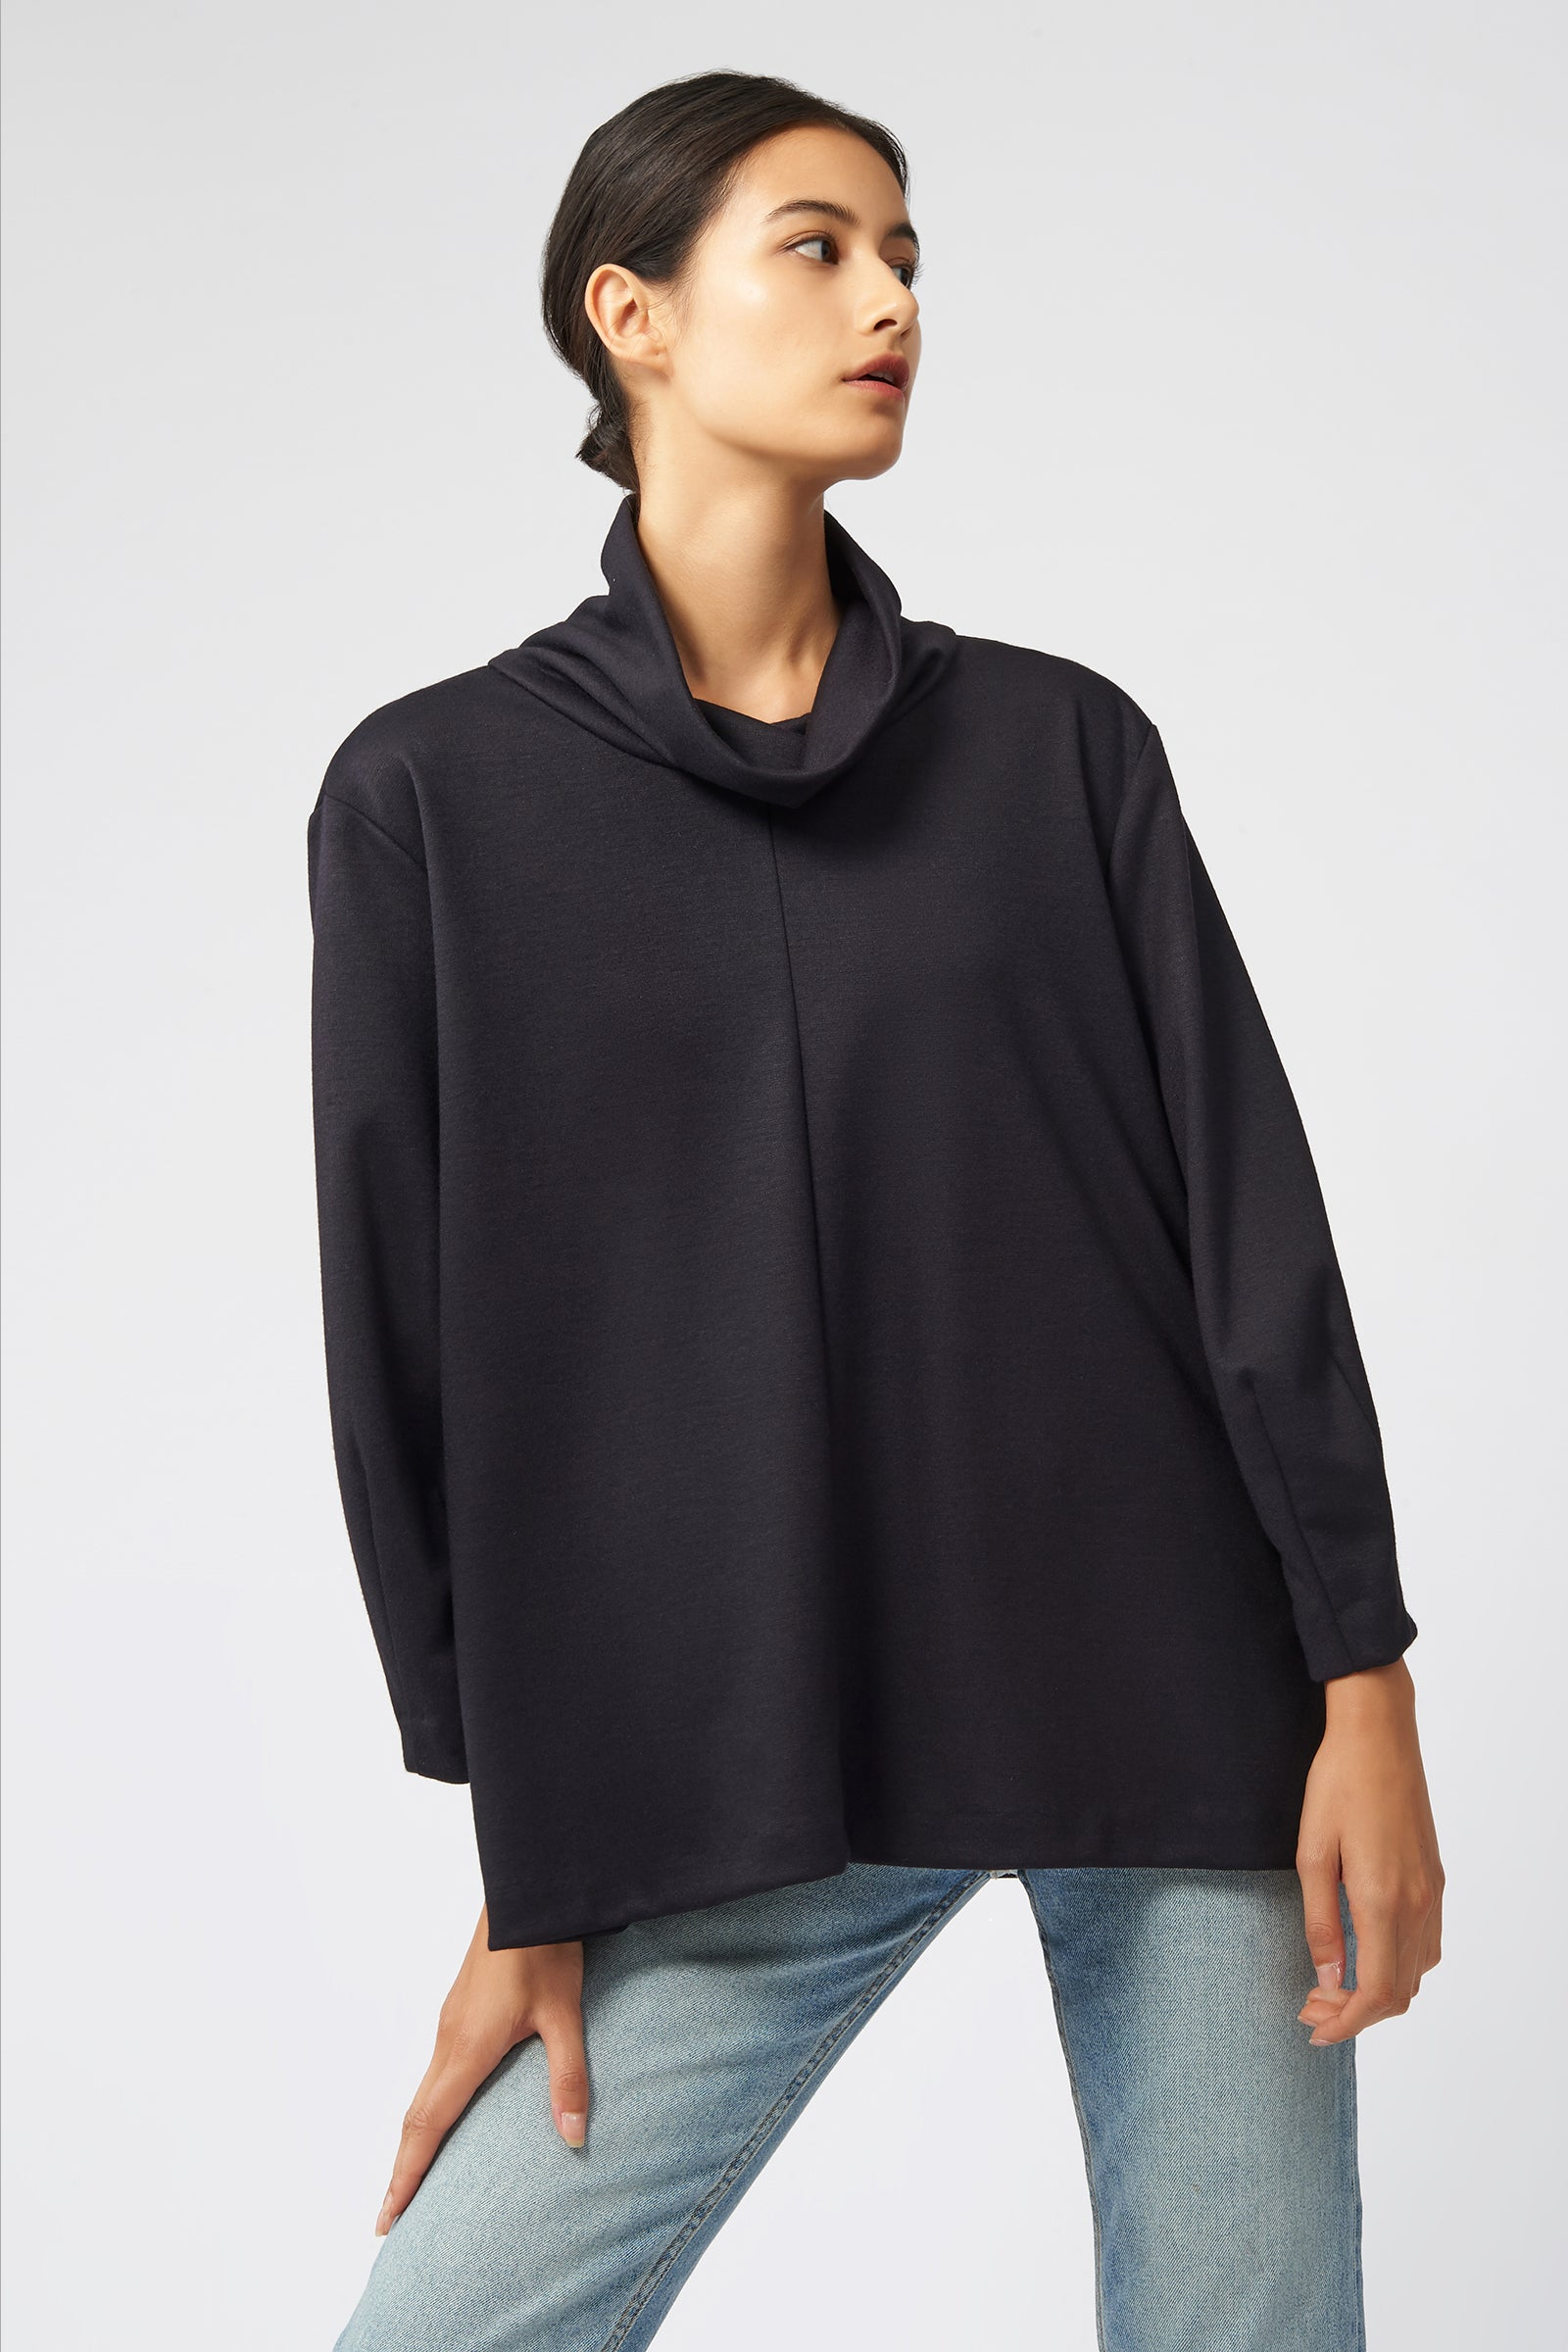 Kal Rieman Ponte Swing Turtleneck in Black on Model Front View